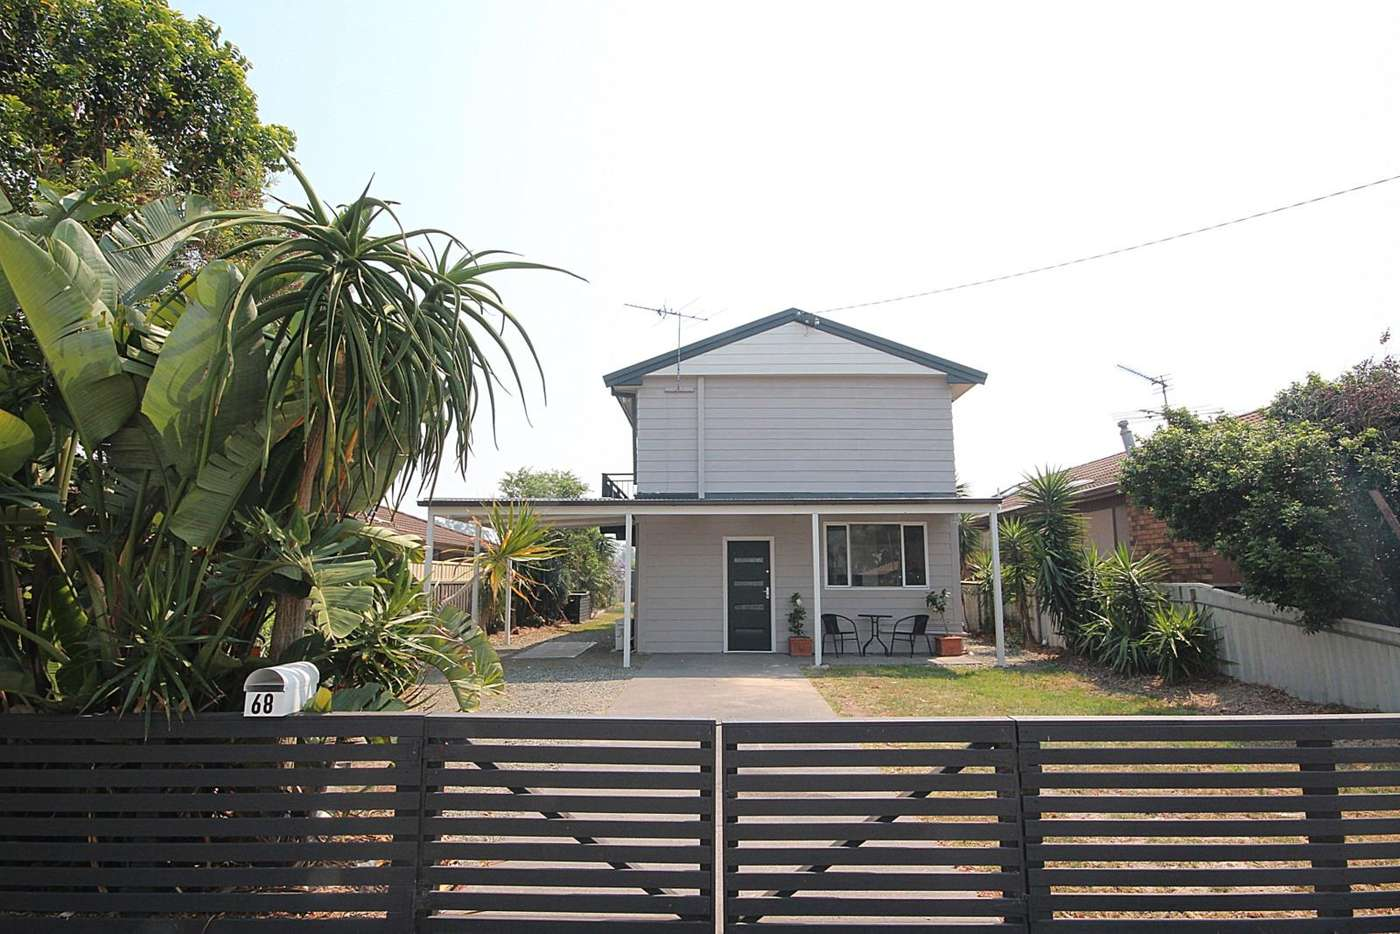 Main view of Homely house listing, 68 Tilligerry Track, Tanilba Bay, NSW 2319